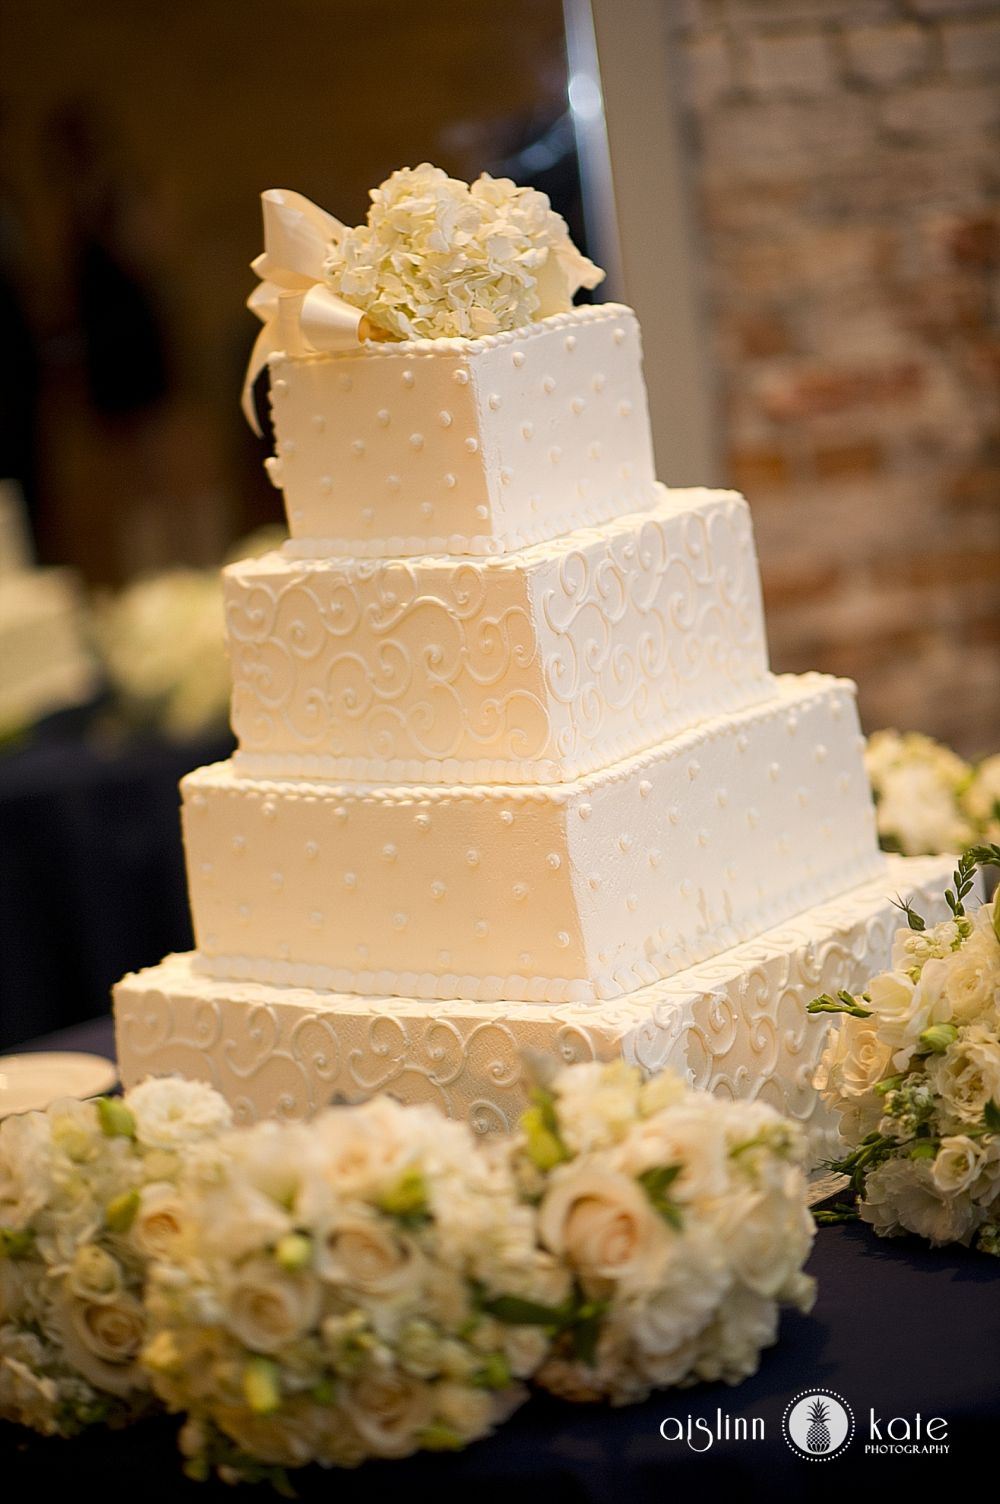 Beautiful Wedding Cake from Publix! | Wedding Cakes | Pinterest ...